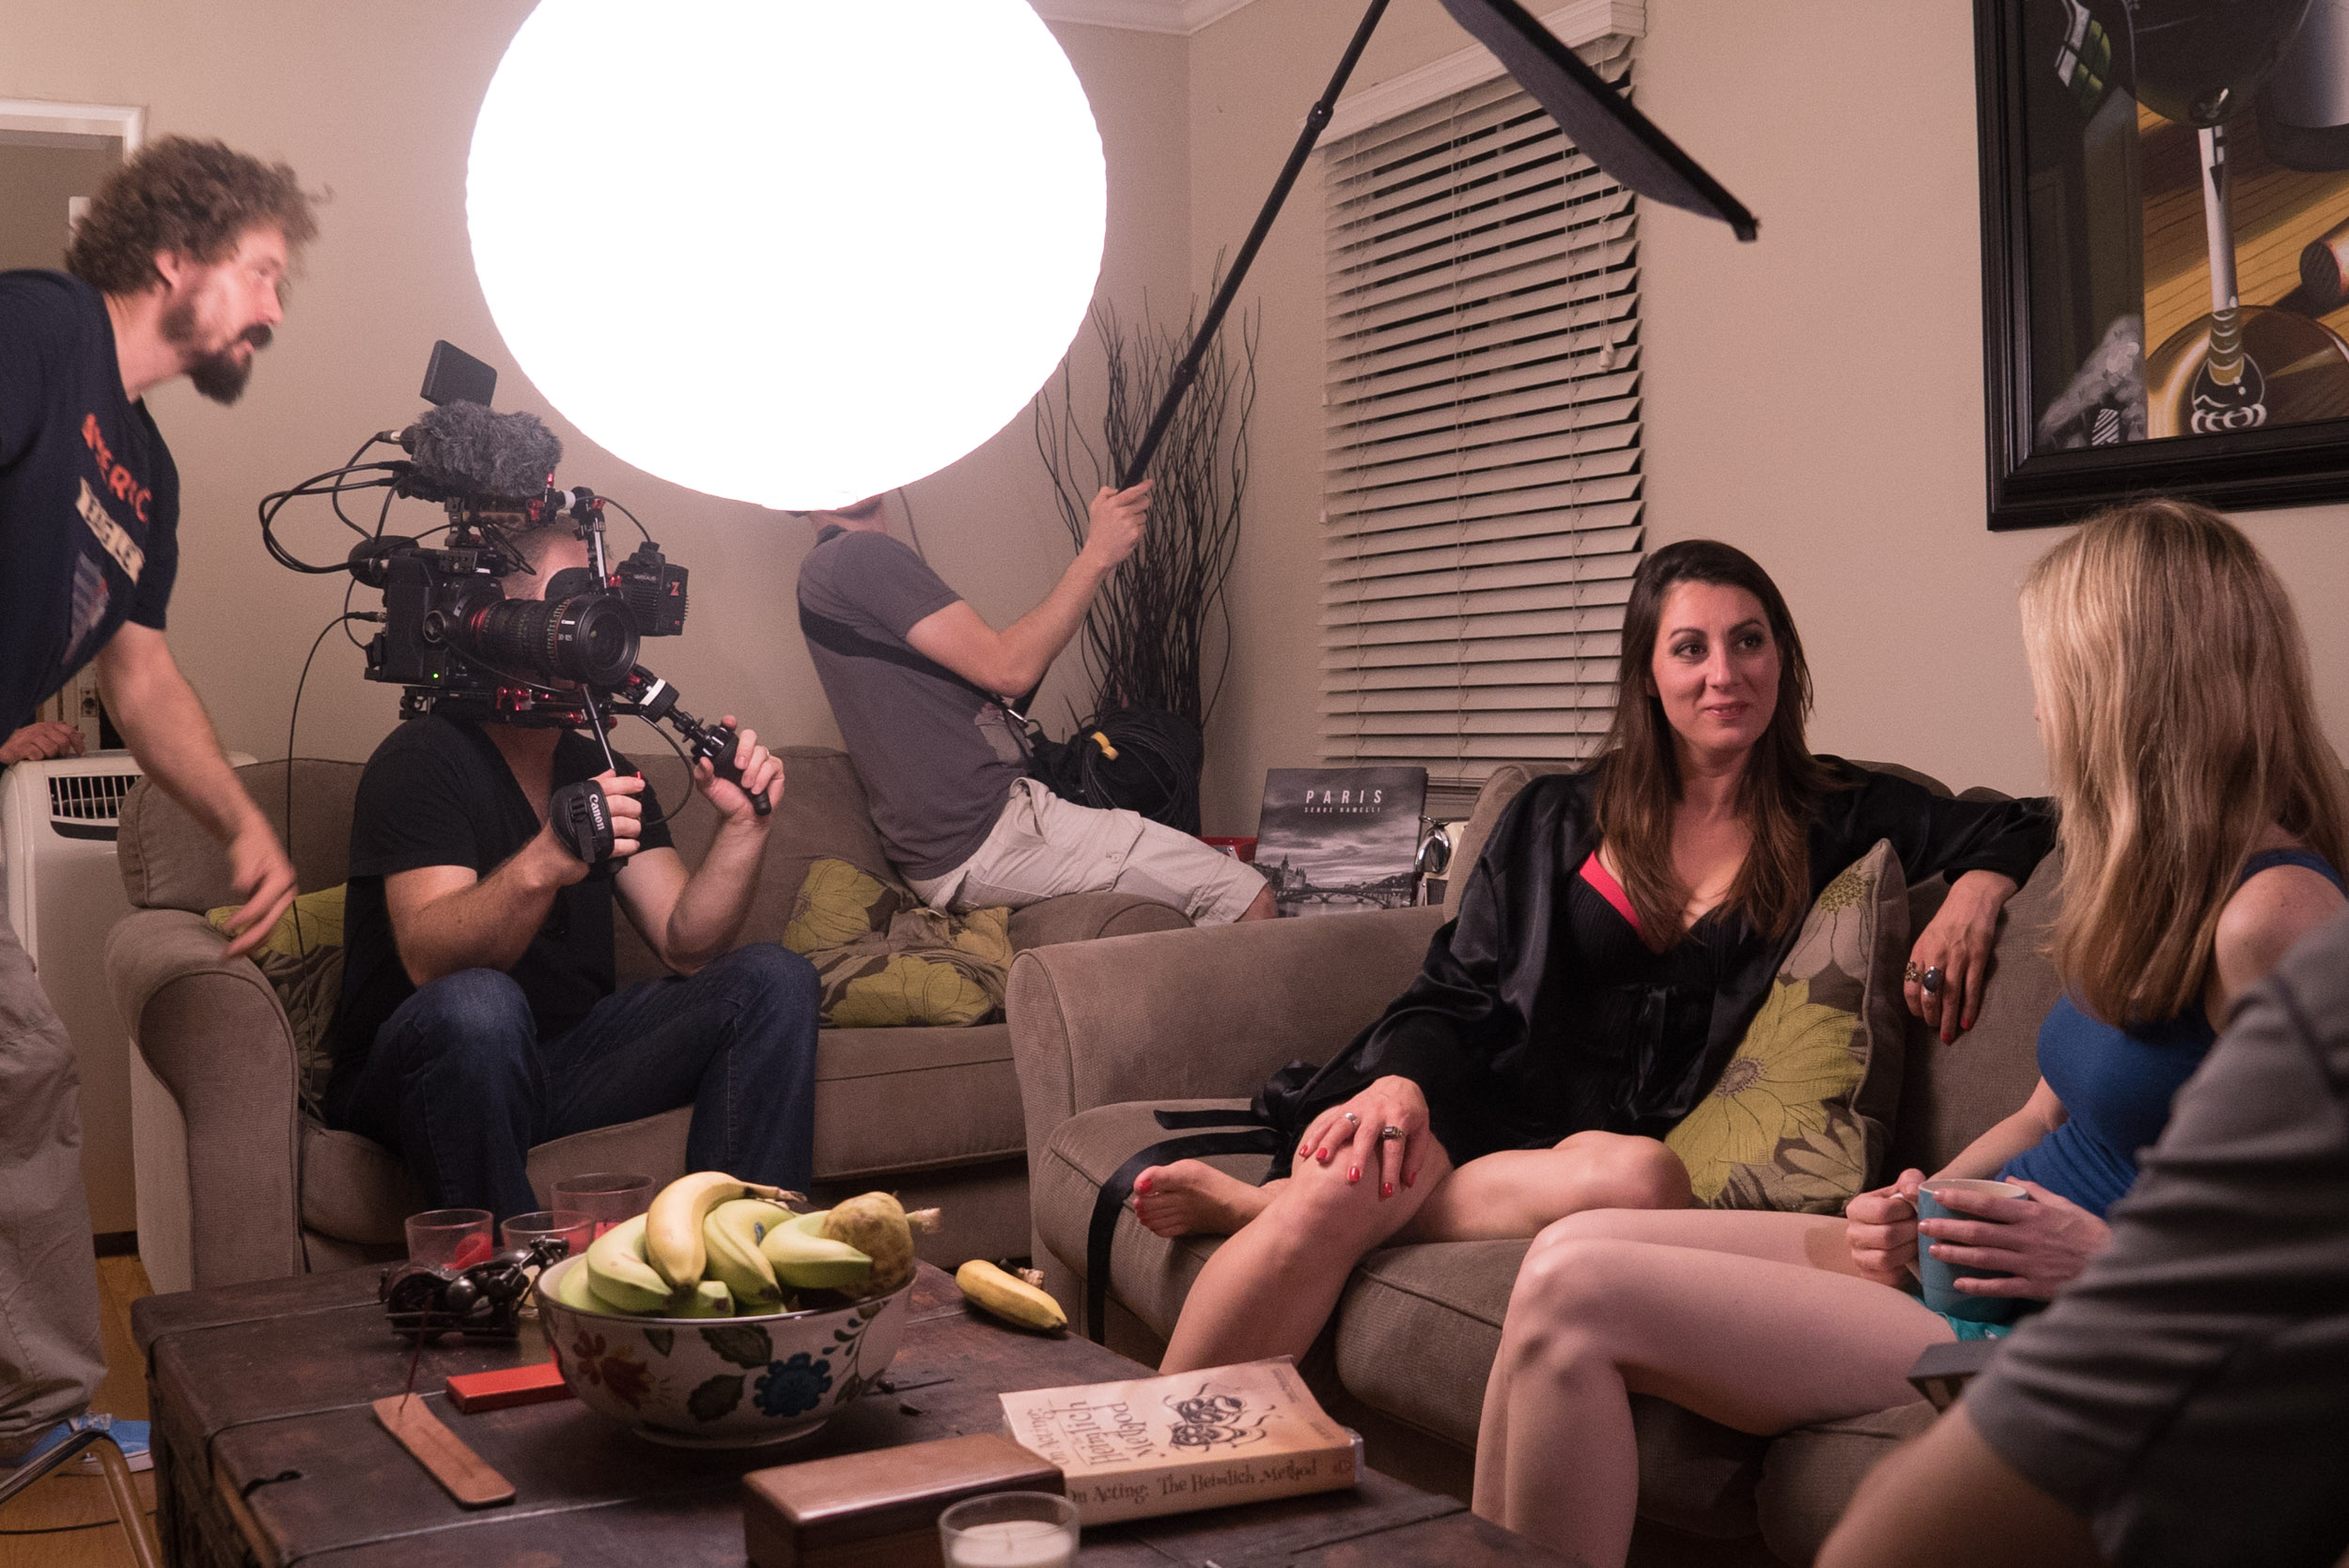 90% of the film was shot handheld using the Canon C300 Mark II on the Zacuto Recoil Rig with the Gratical Viewfinder.